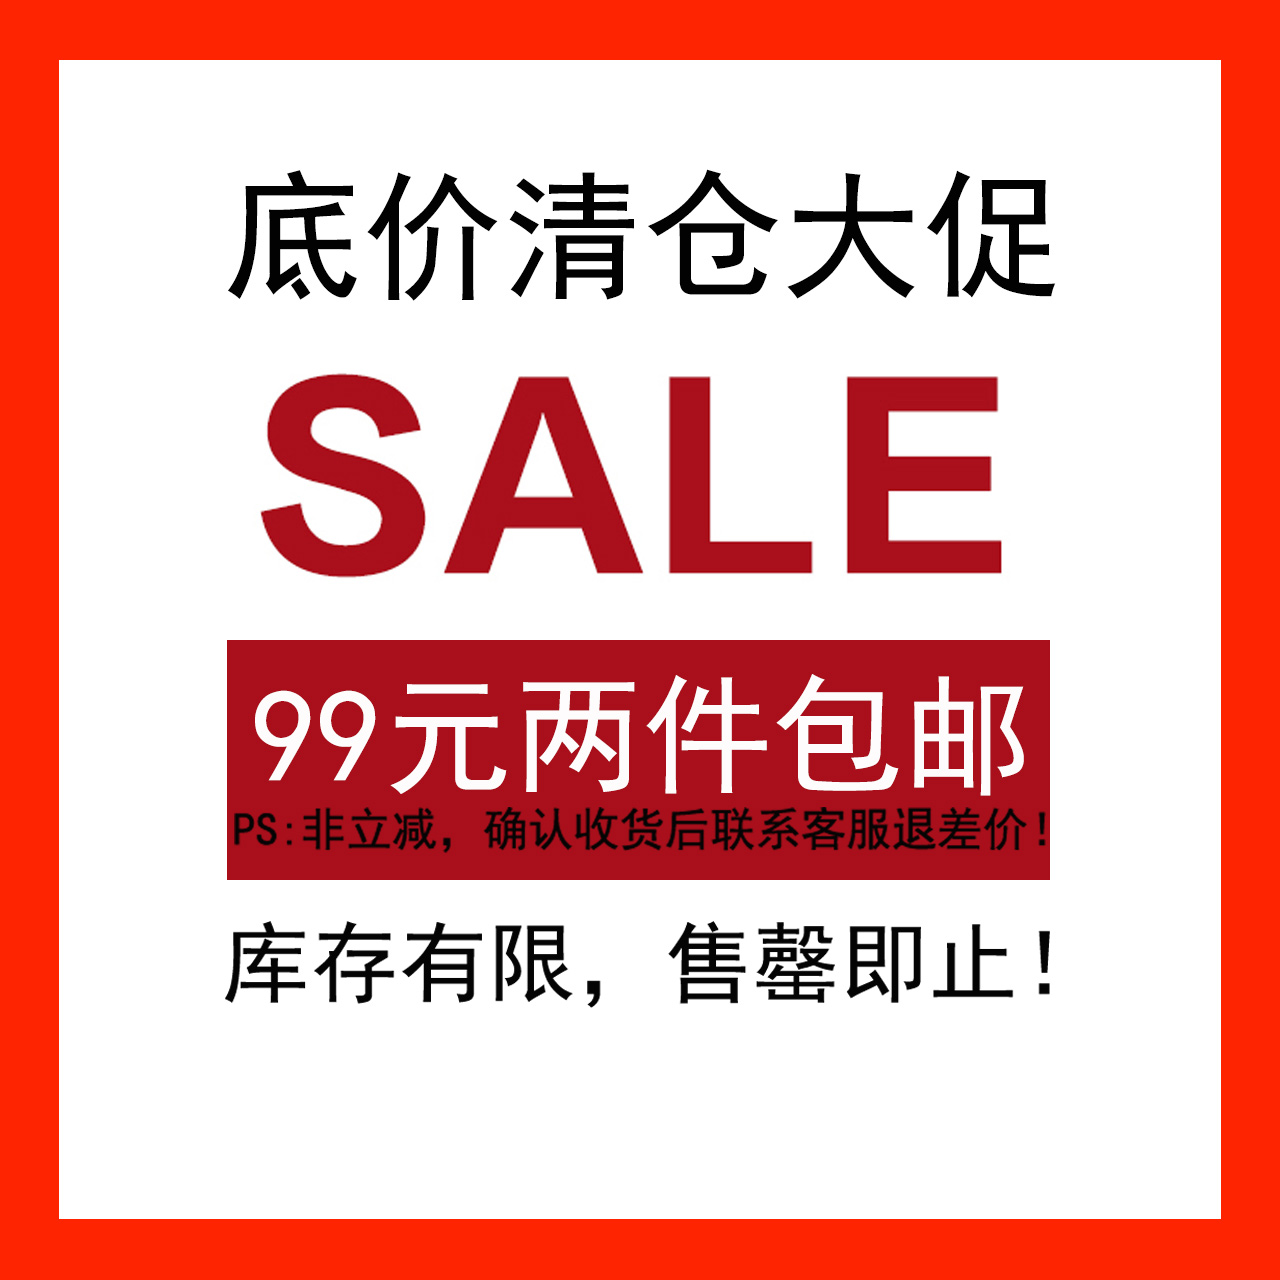 ARTMI's apparel brand SK. Underpriced clearance of 99 yuan two parcel post